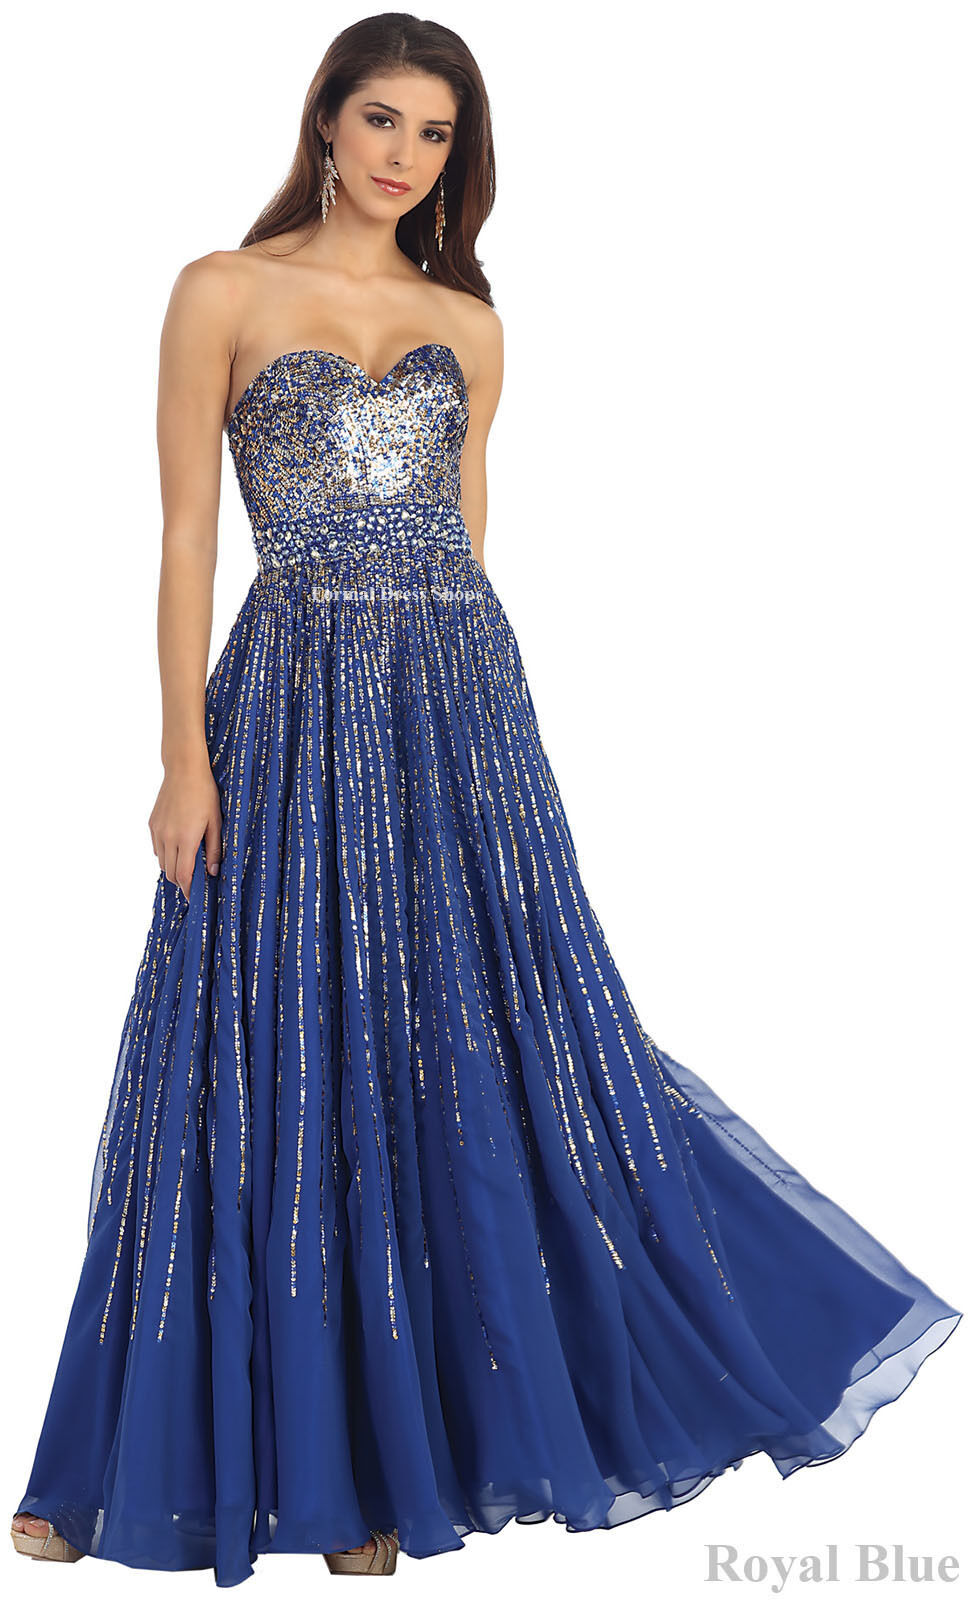 SALE ! FLOWY ROMAN GODDESS EVENING GOWN PROM PAGEANT SWEET ...